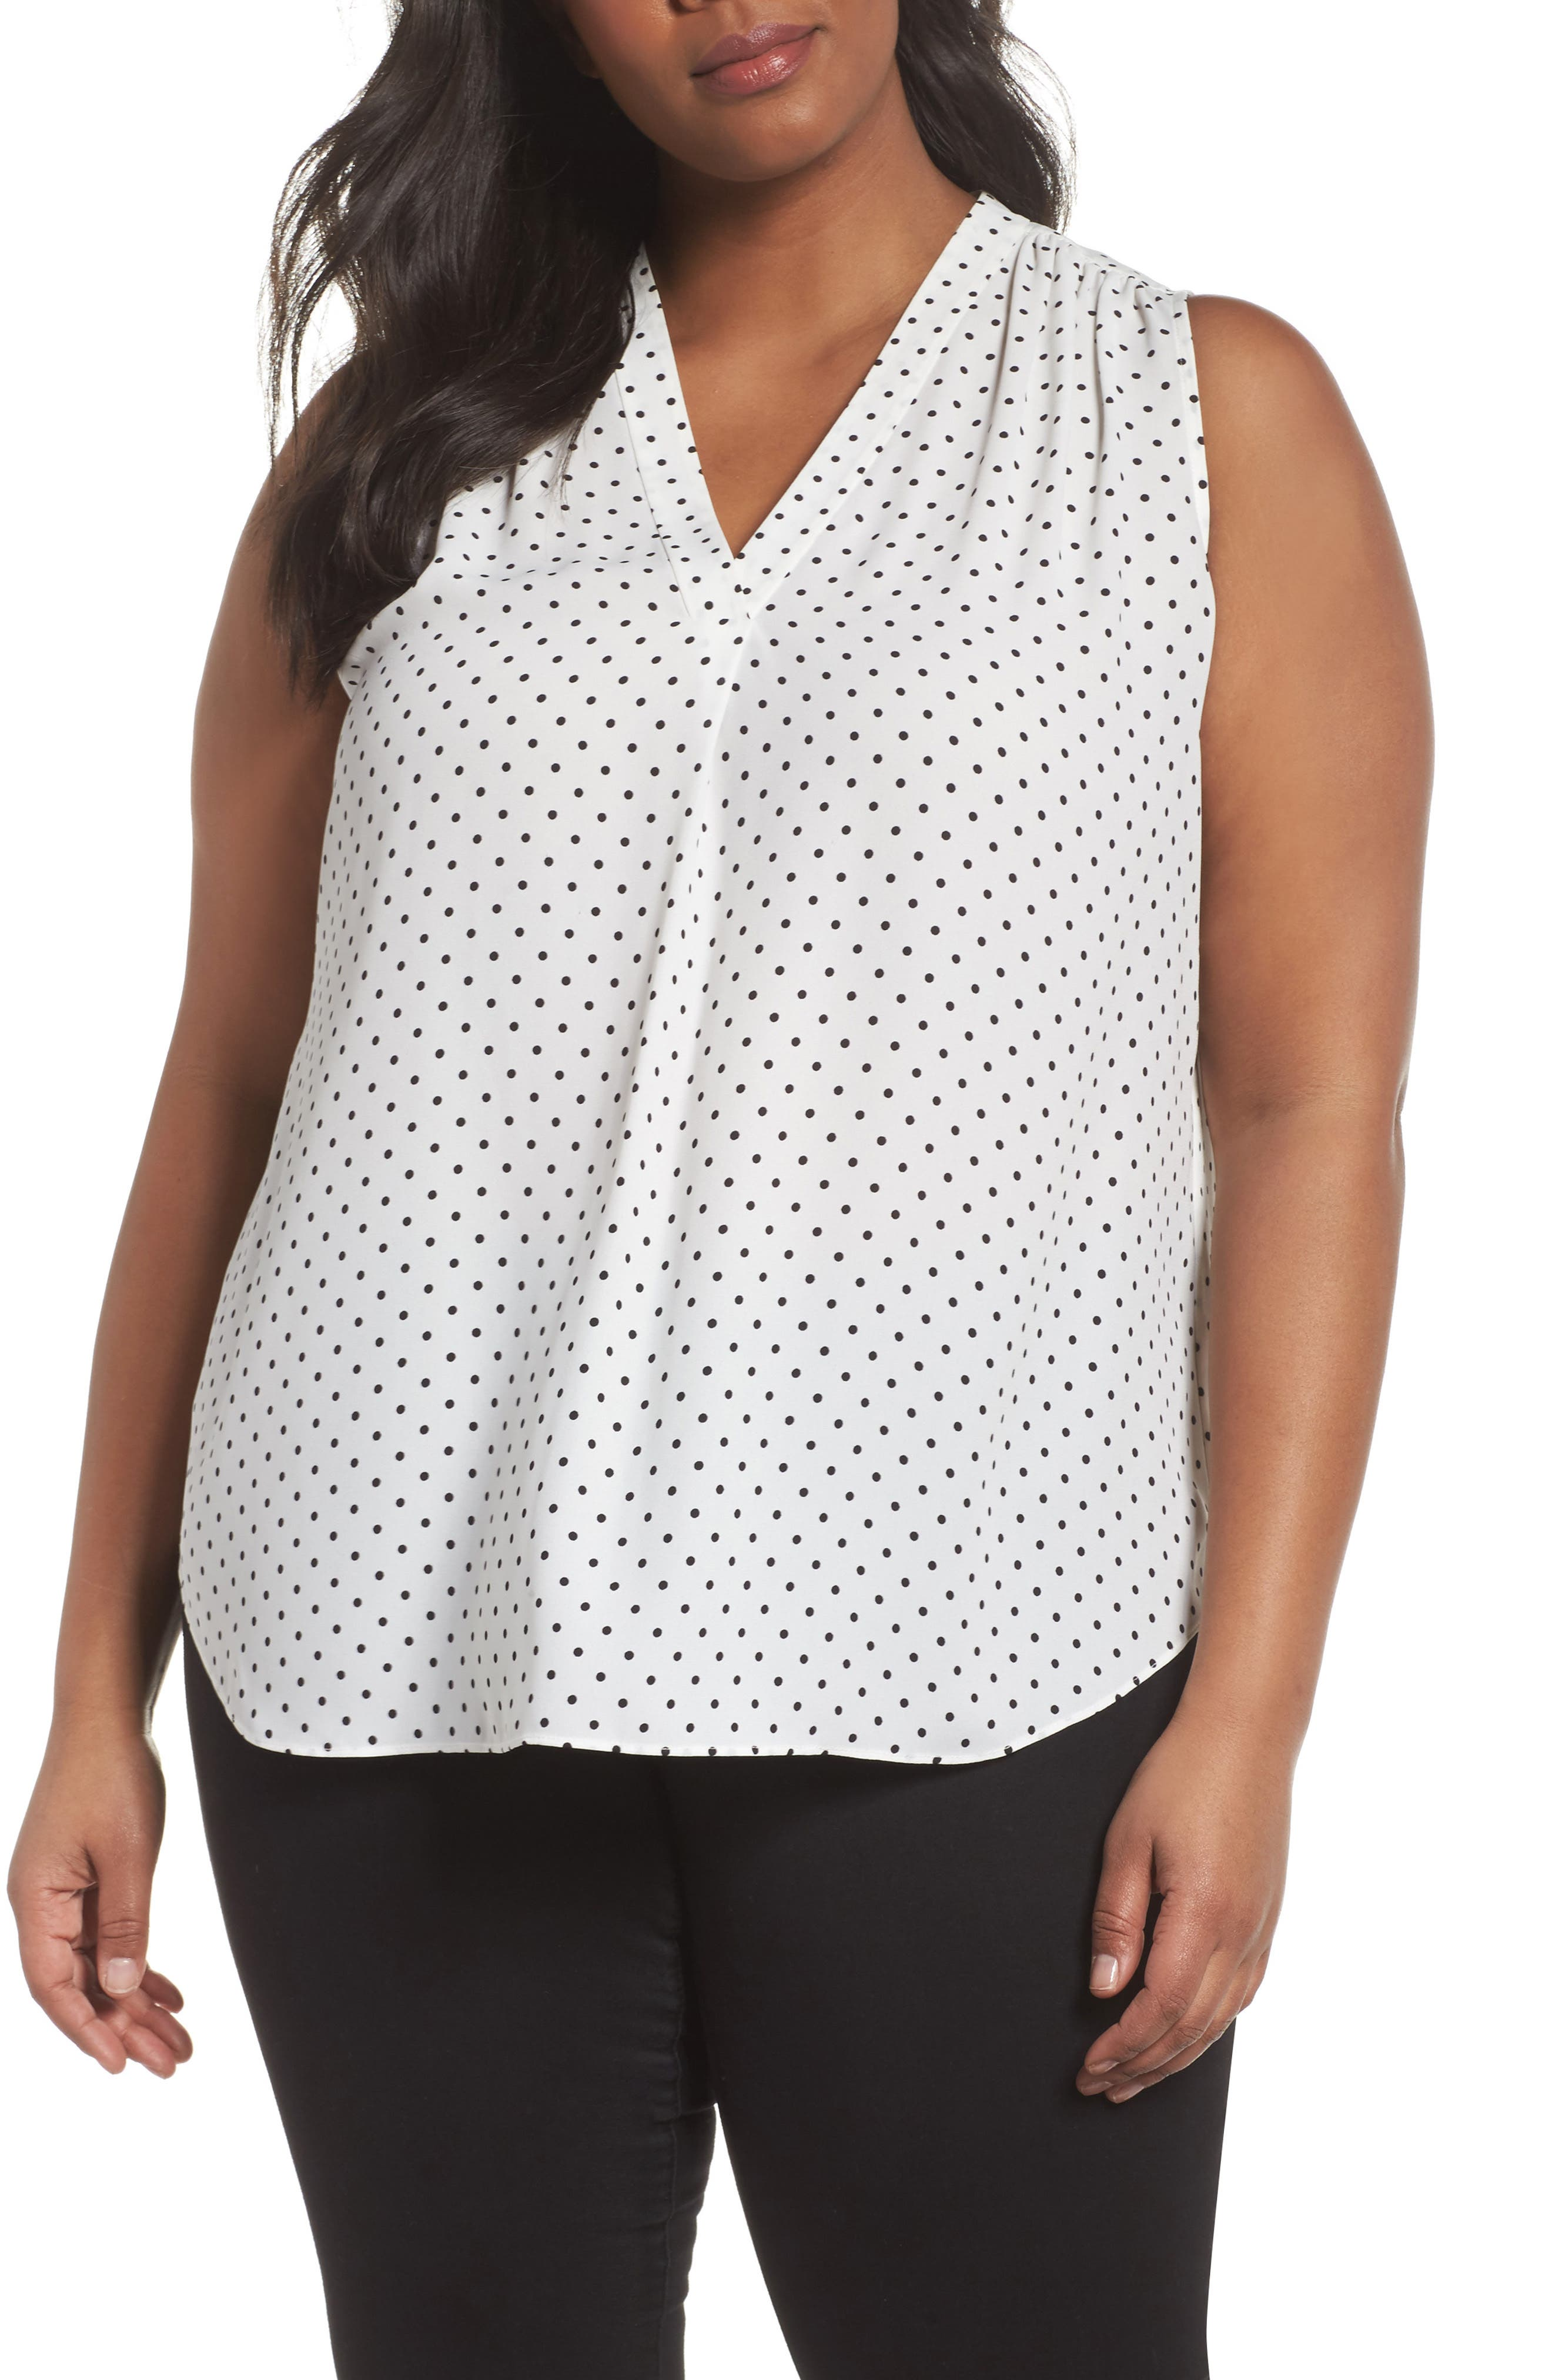 Poetic Dots Sleeveless V-Neck Blouse,                             Main thumbnail 1, color,                             903